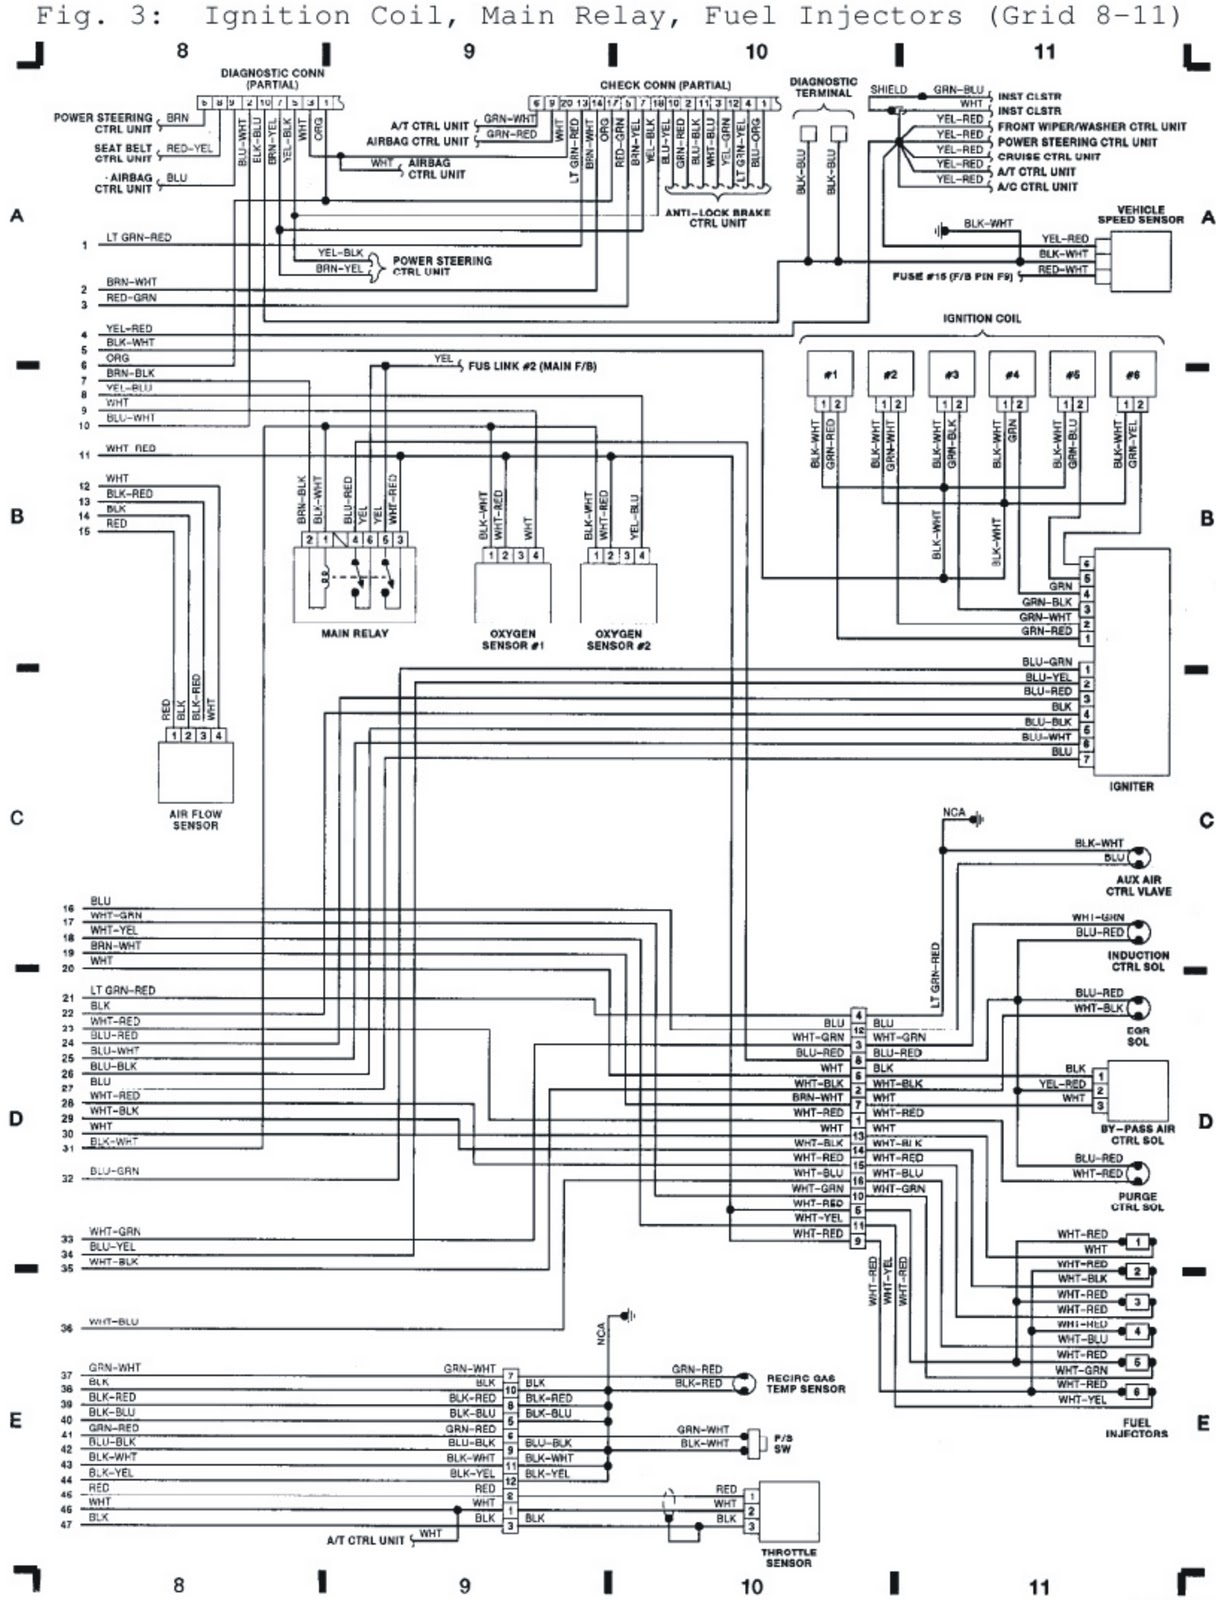 02 Wrx Fuse Box Diagram Trusted Wiring Diagram 2013 Subaru WRX Interior  Wiring Diagrams 02 Subaru Impreza Wiring Diagram